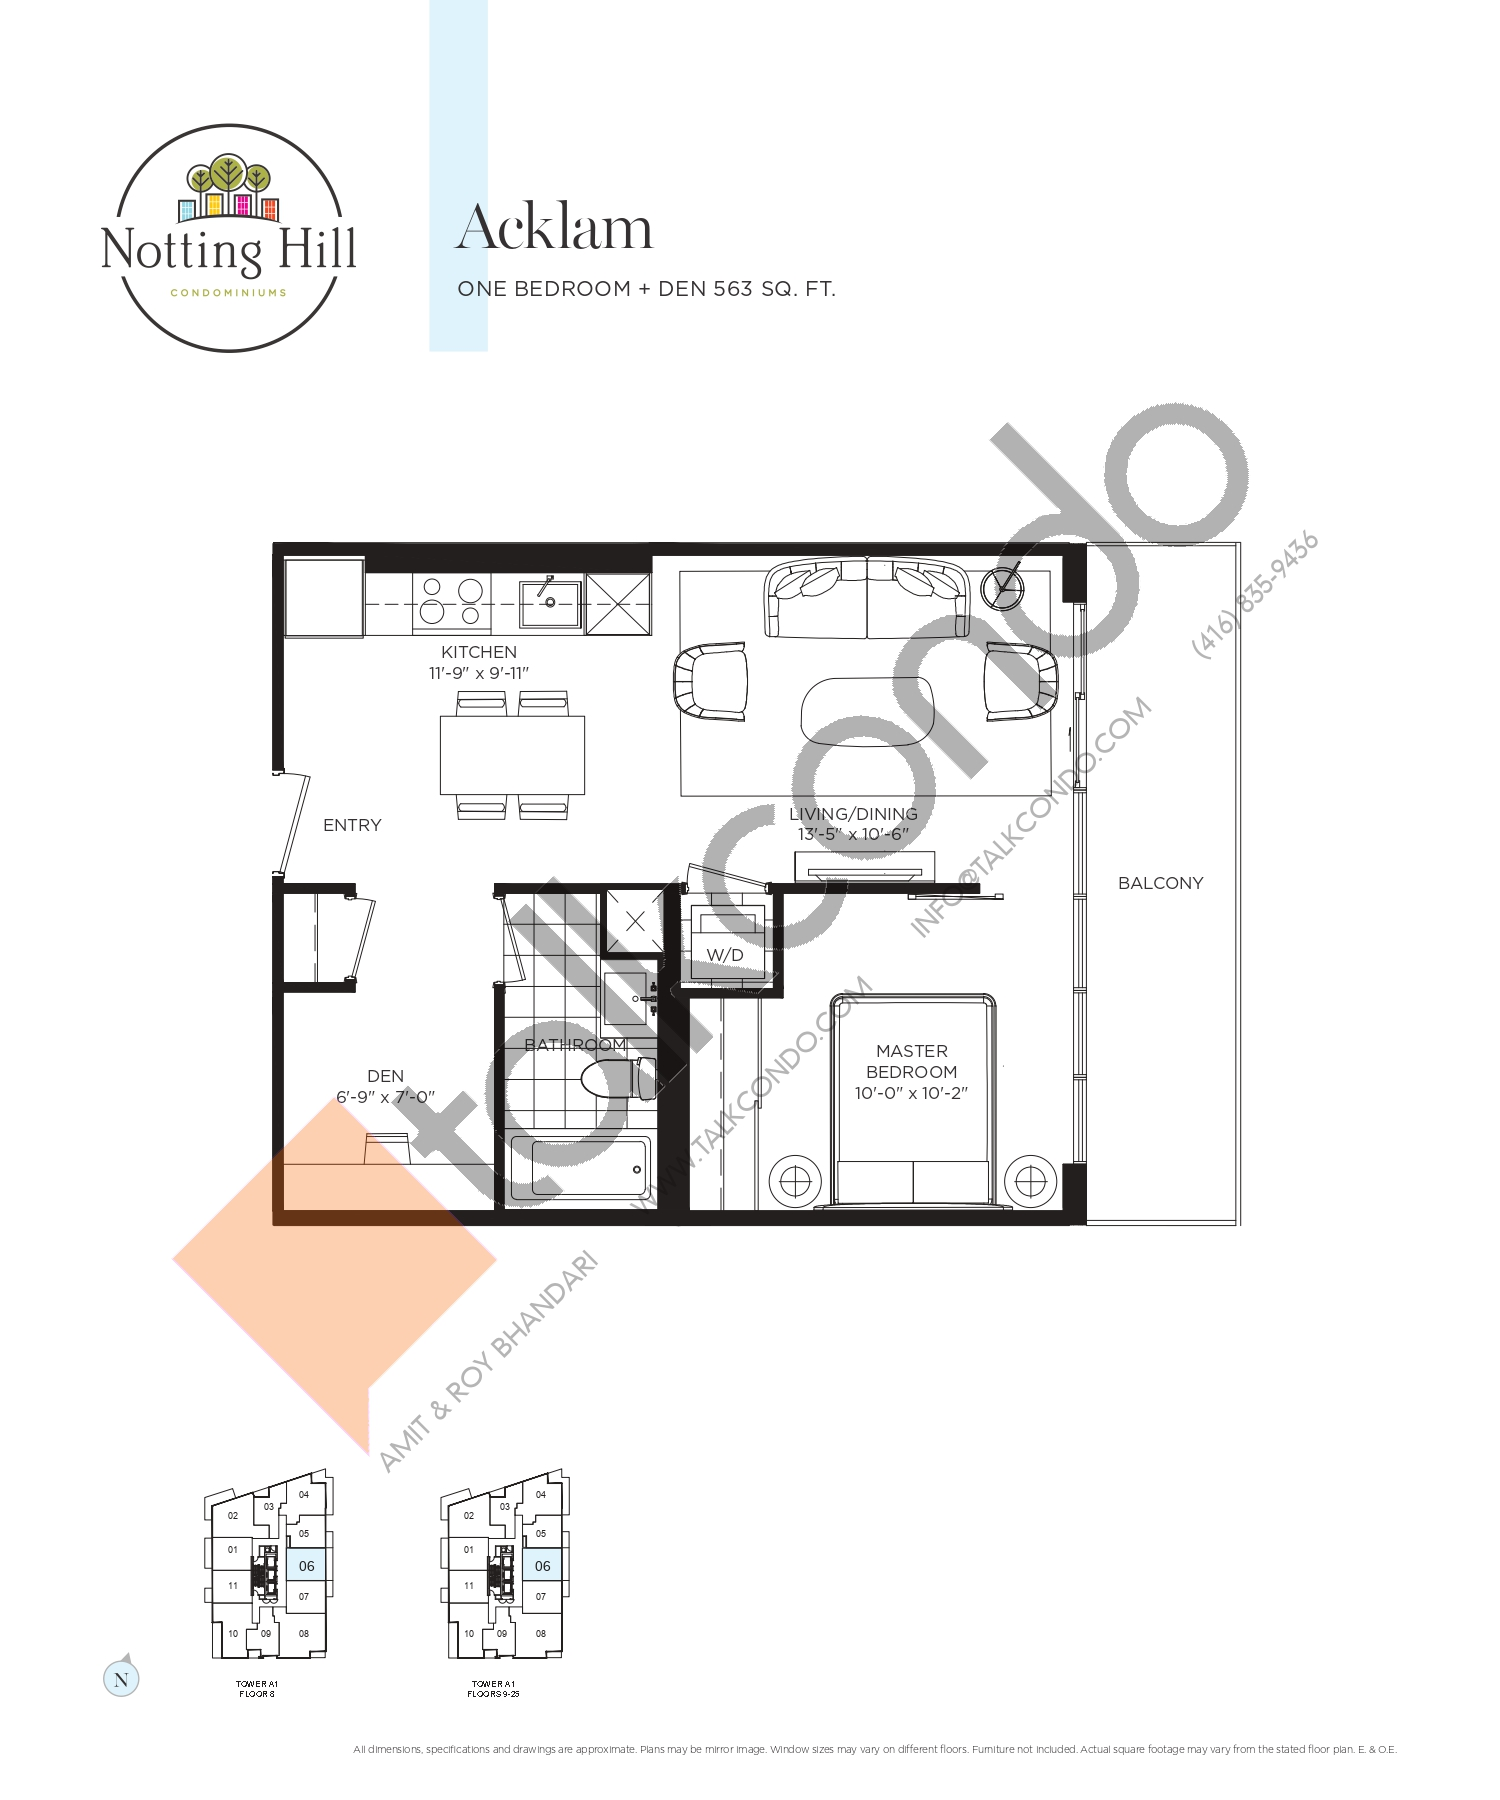 Acklam Floor Plan at Notting Hill Phase 2 Condos - 563 sq.ft